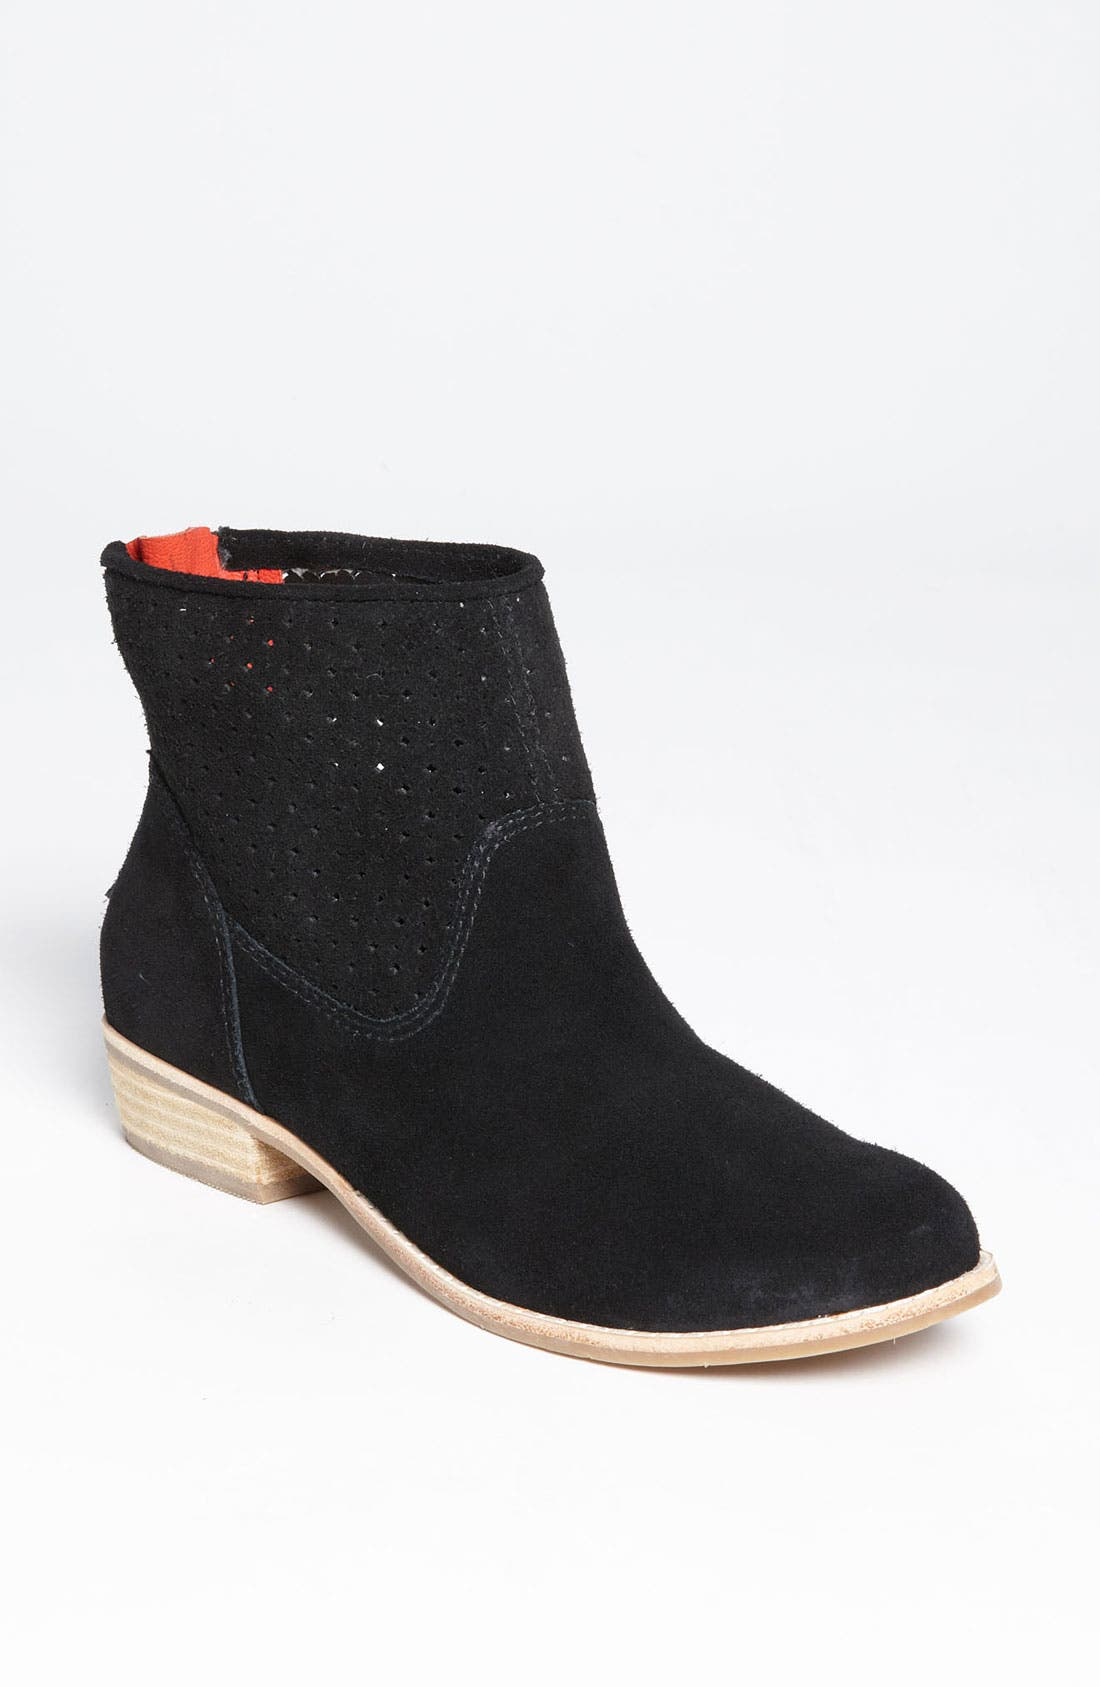 Alternate Image 1 Selected - DV by Dolce Vita 'Maeve' Boot